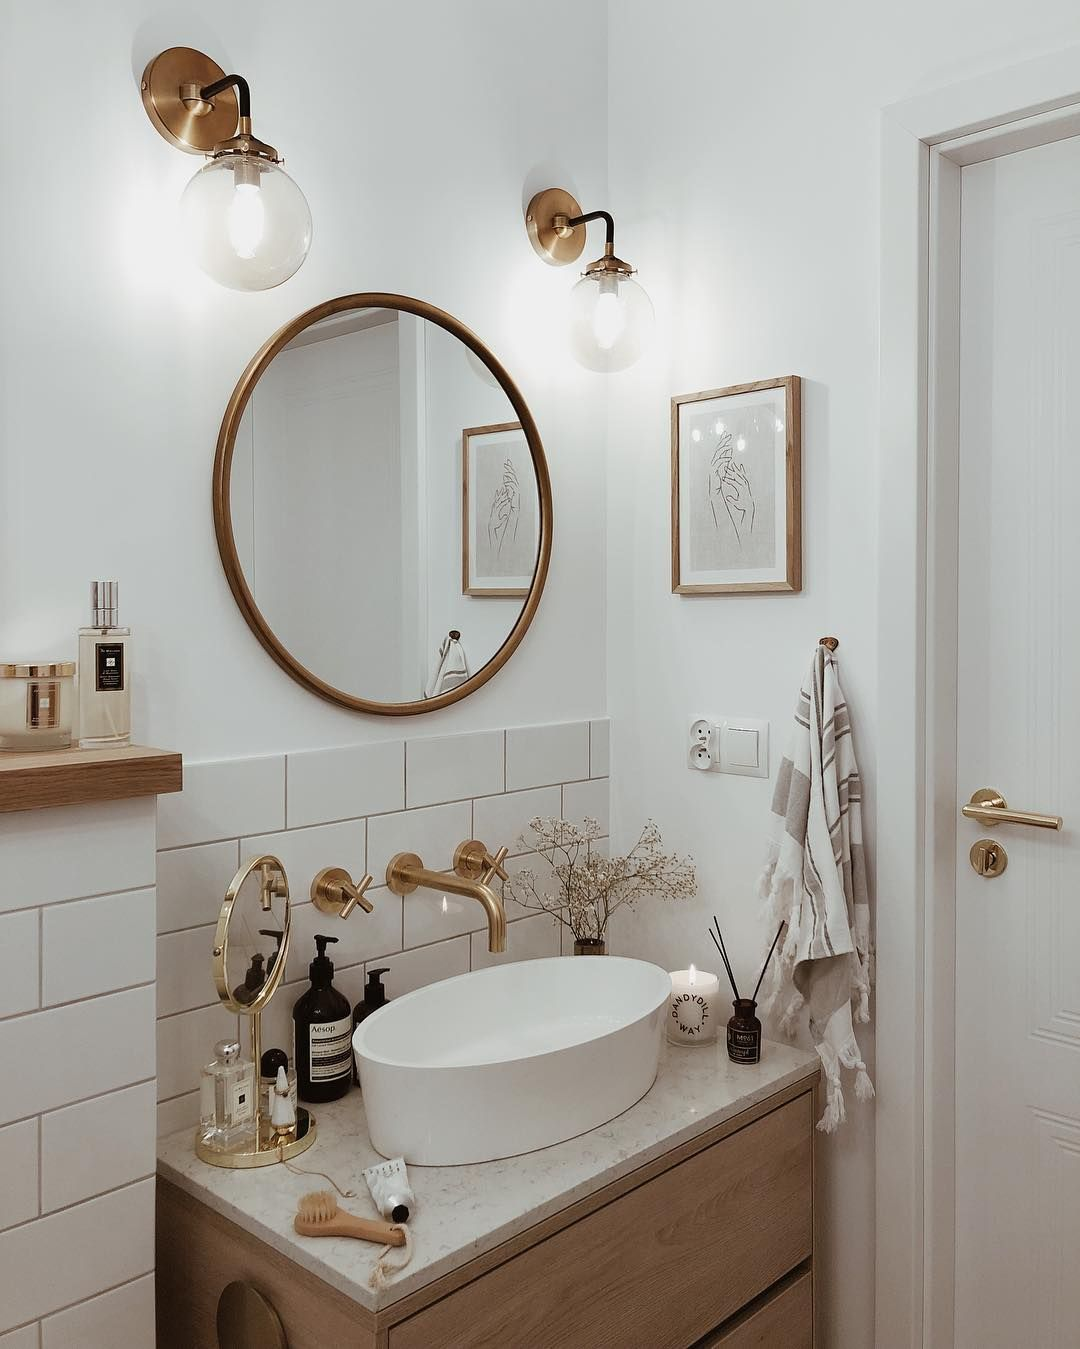 Favourite Bathroom Home Decor: Bathroom This Is Absolutely My Favorite Place At Home